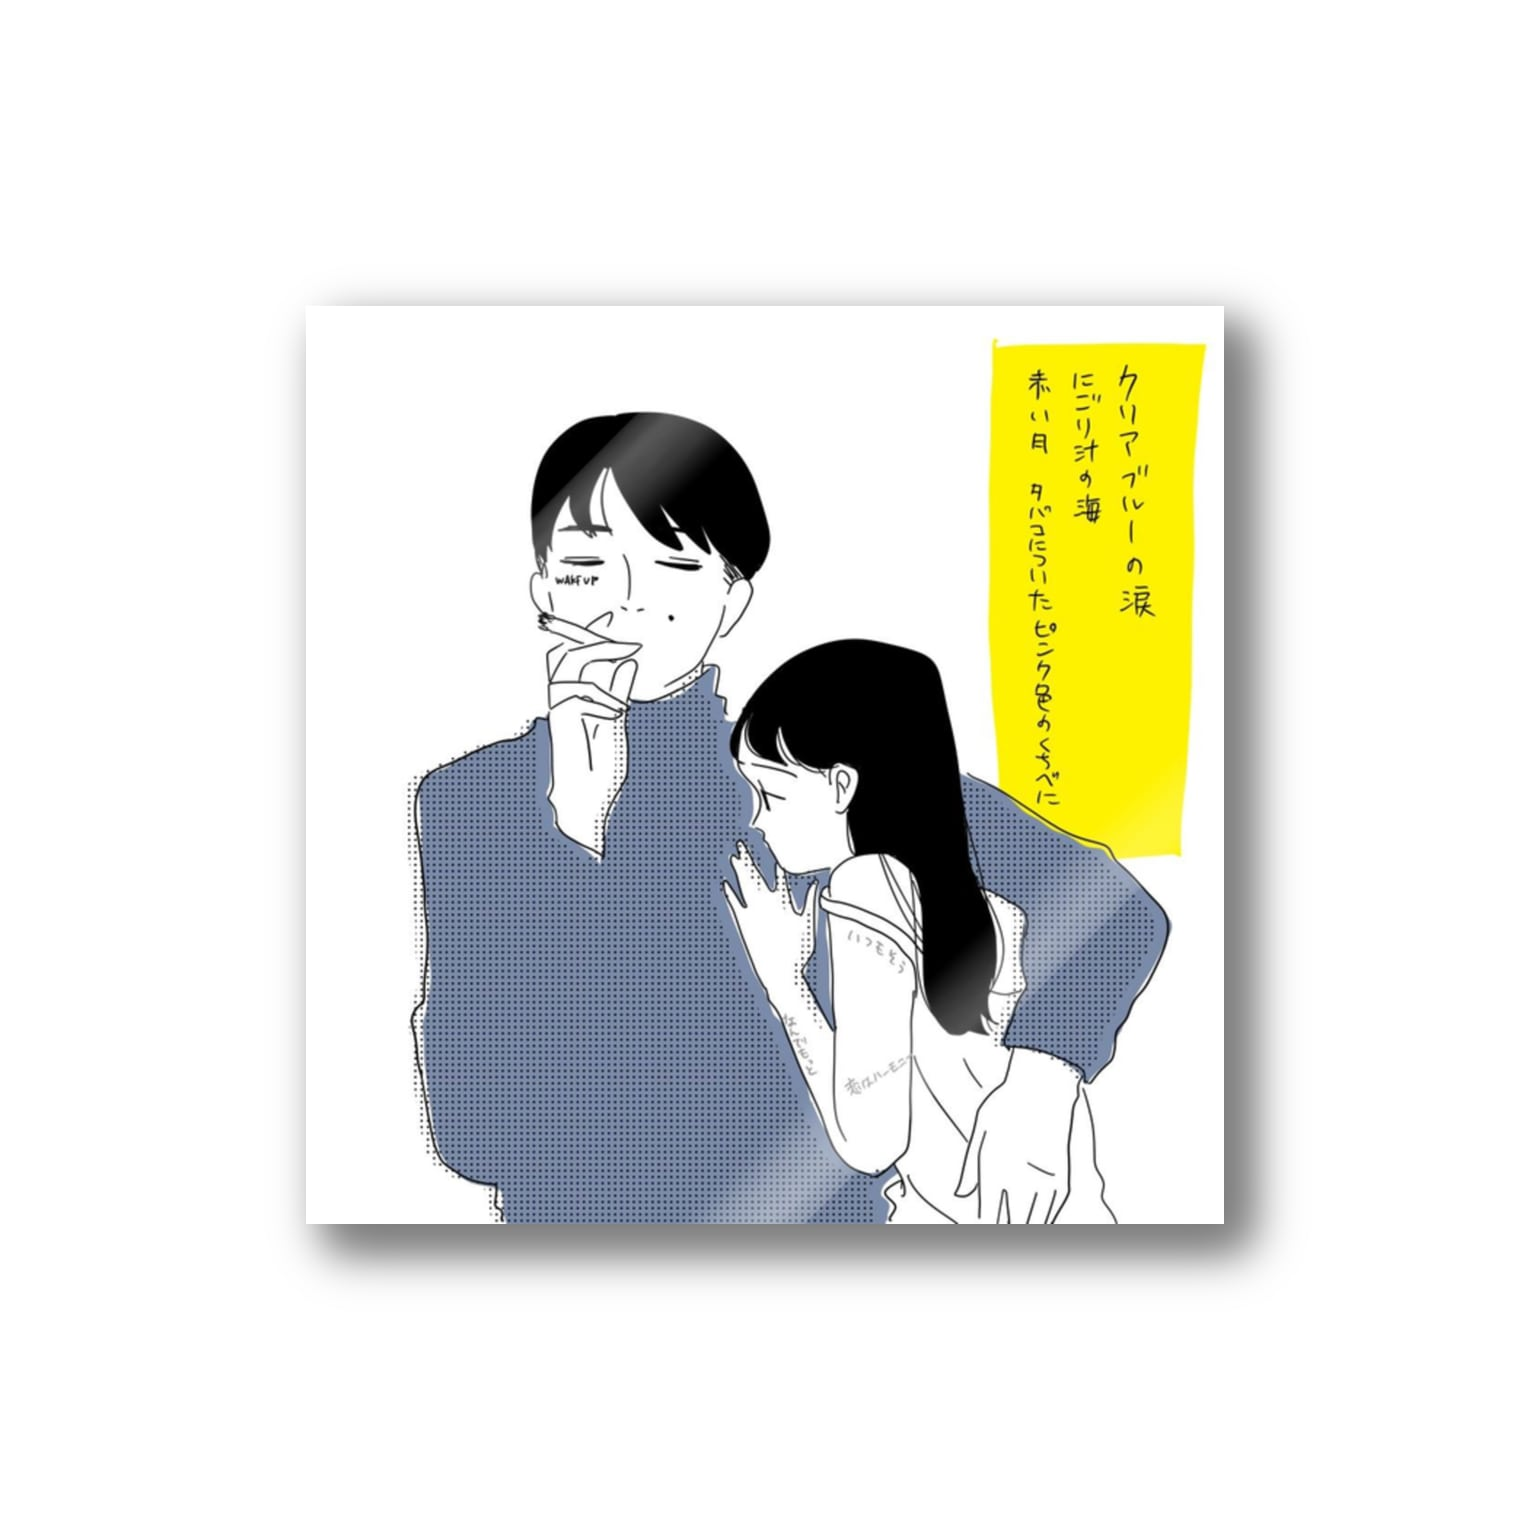 oyumi bedtownの抱いてよね Stickers